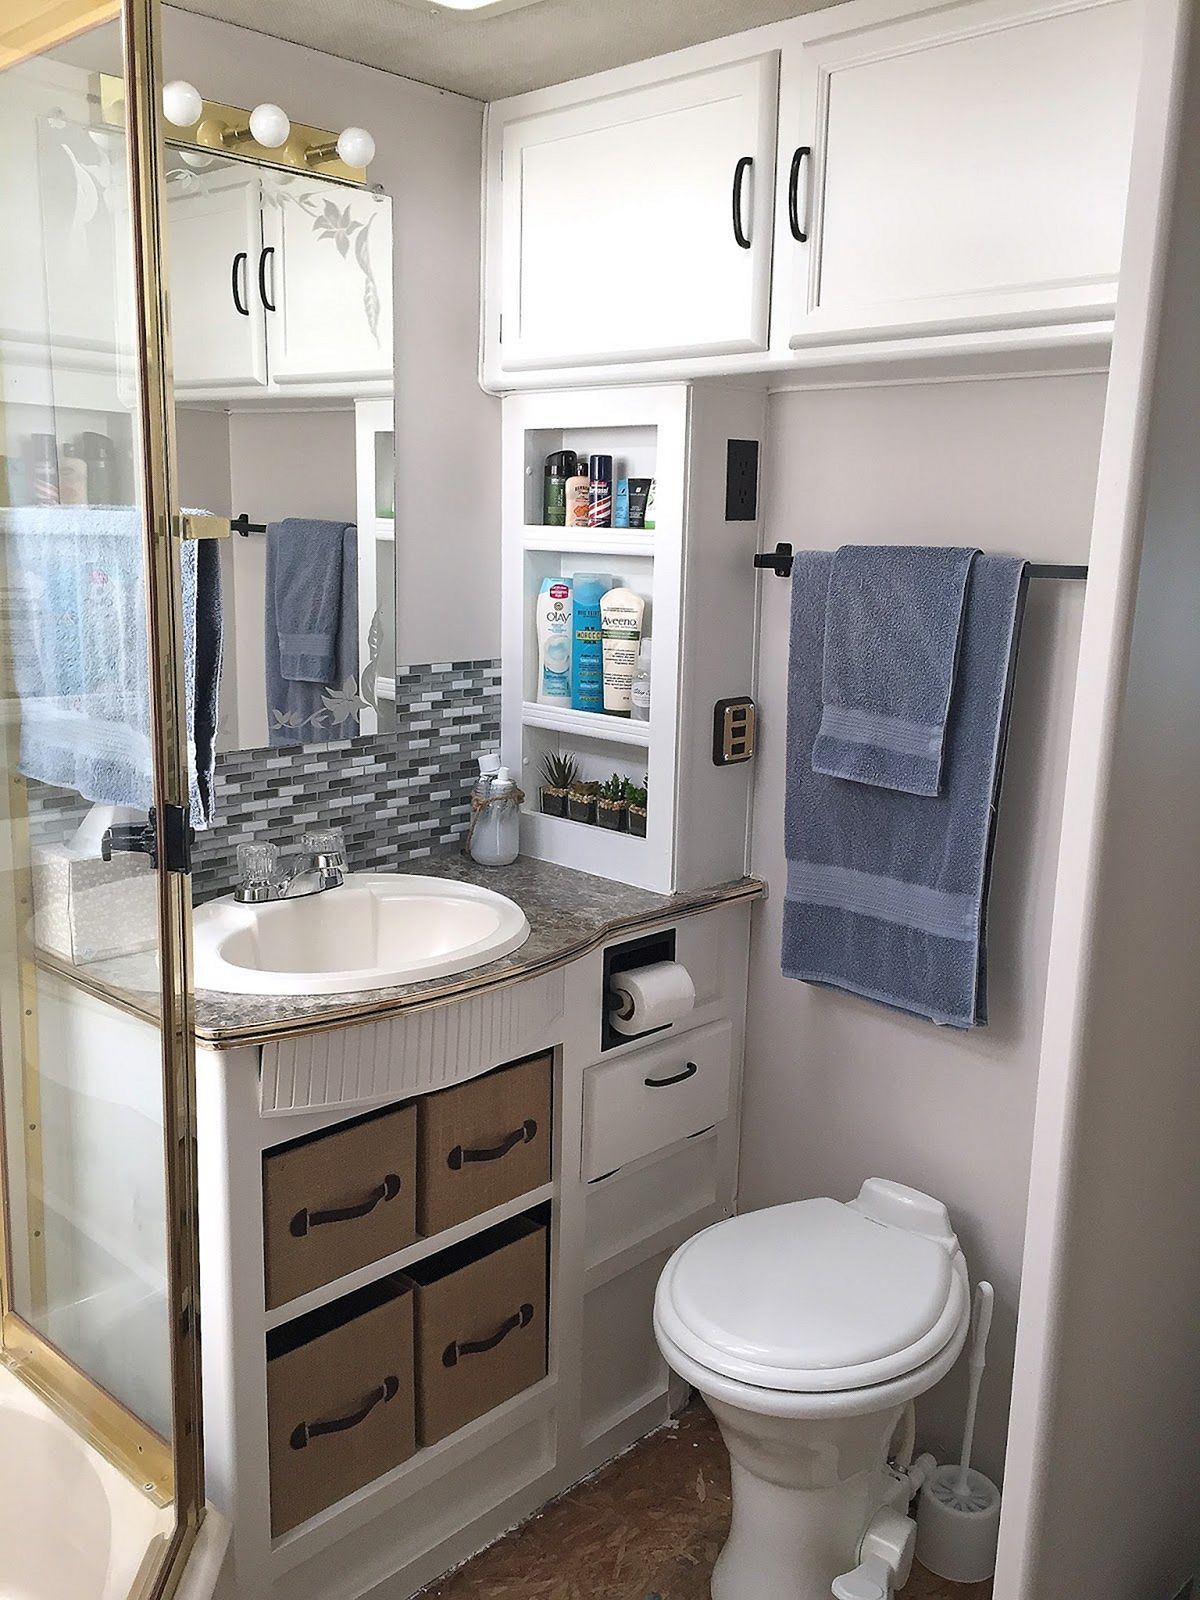 Top RV Bathroom Remodel With Before And After Picture Pinterest - Rv bathroom remodel